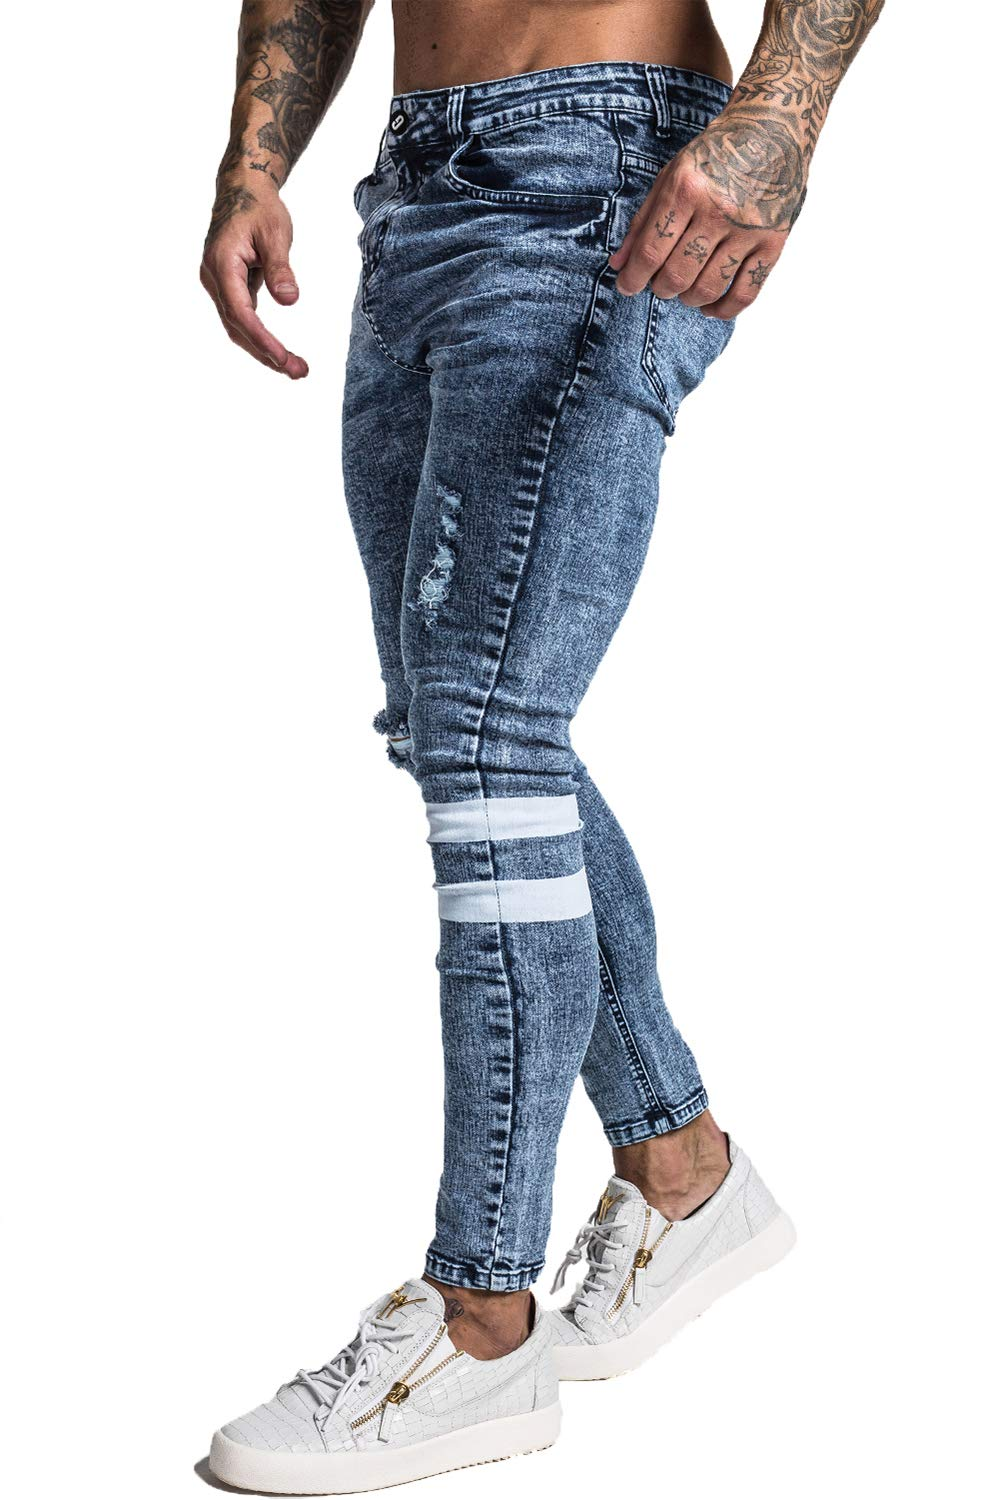 778e7d1dad87 GINGTTO Men's Ripped Jeans Stretch Slim Fit Denim Ice Blue 28 Waist ...